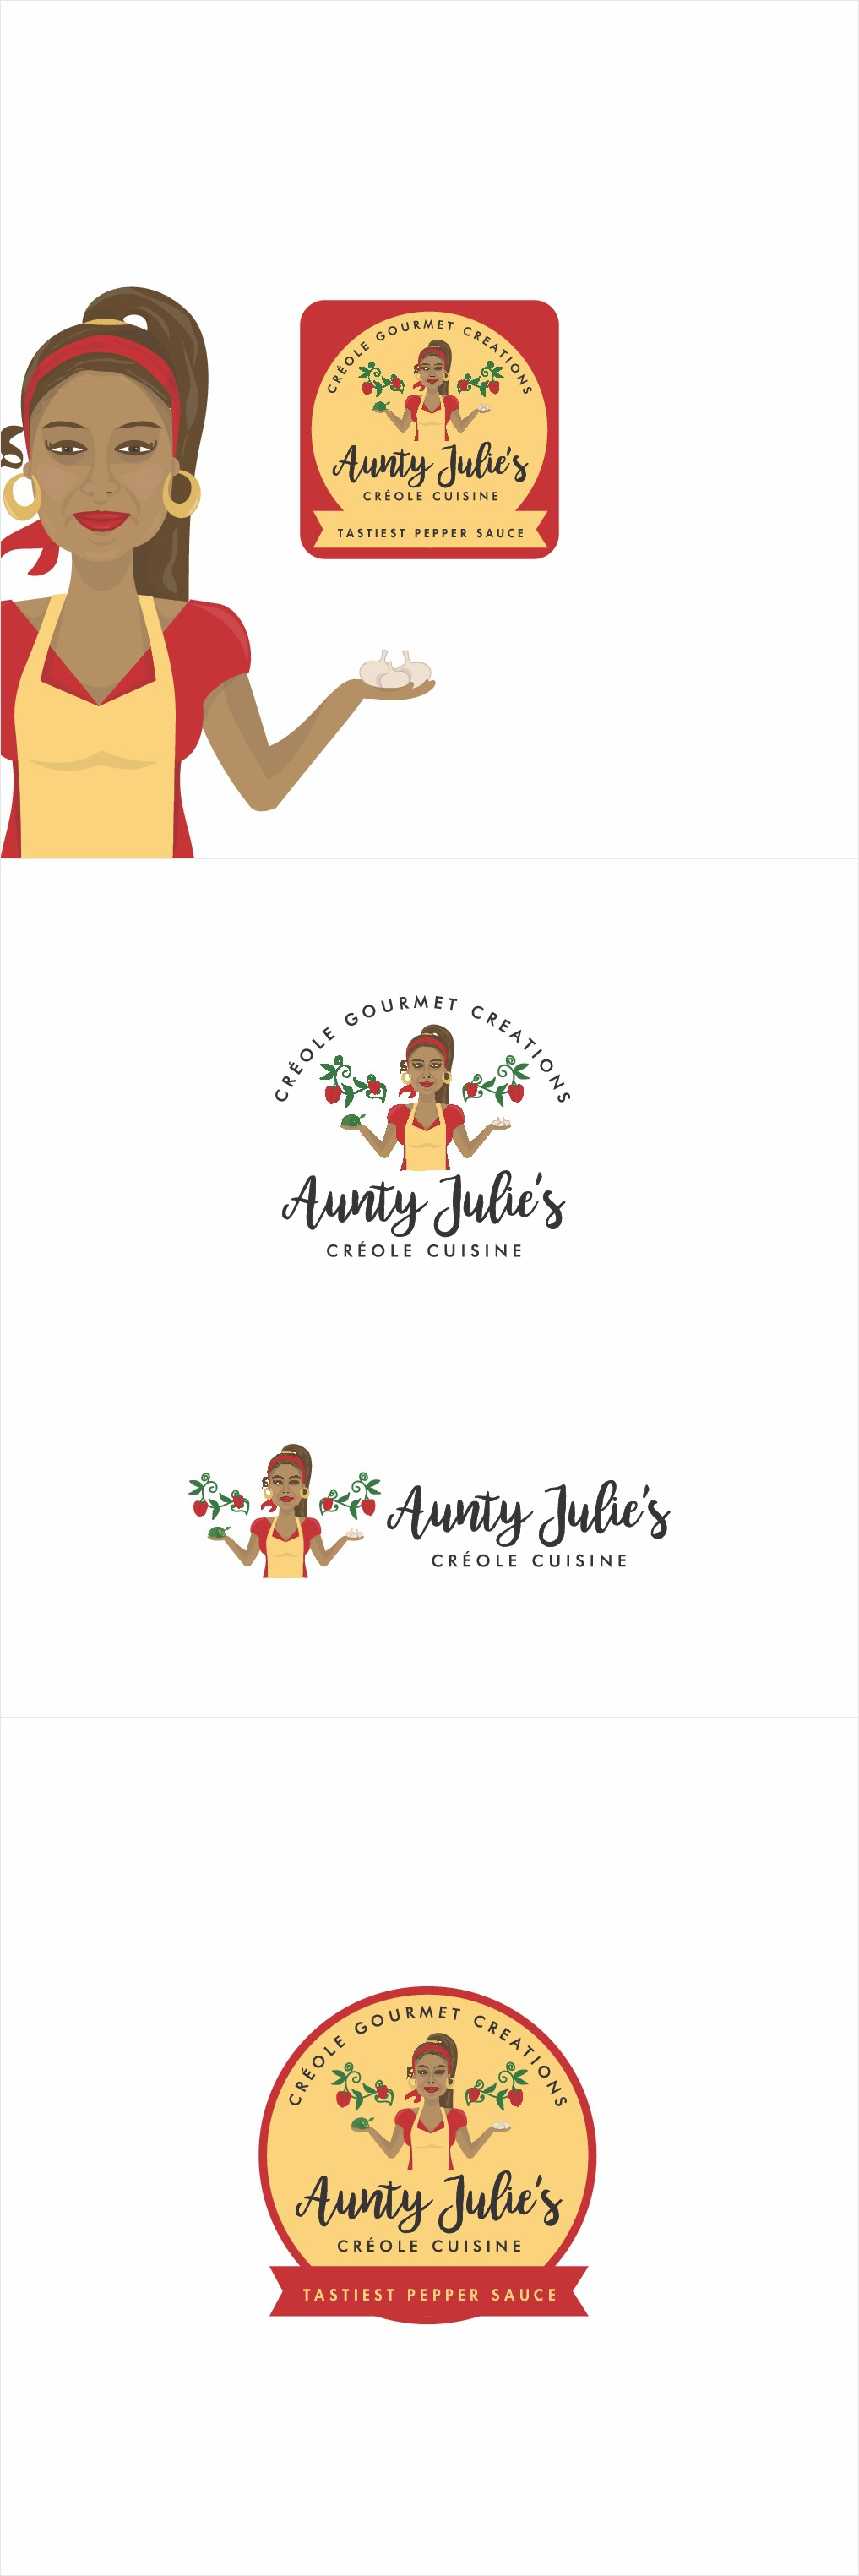 Design and/or Create a logo for my food business that stands out